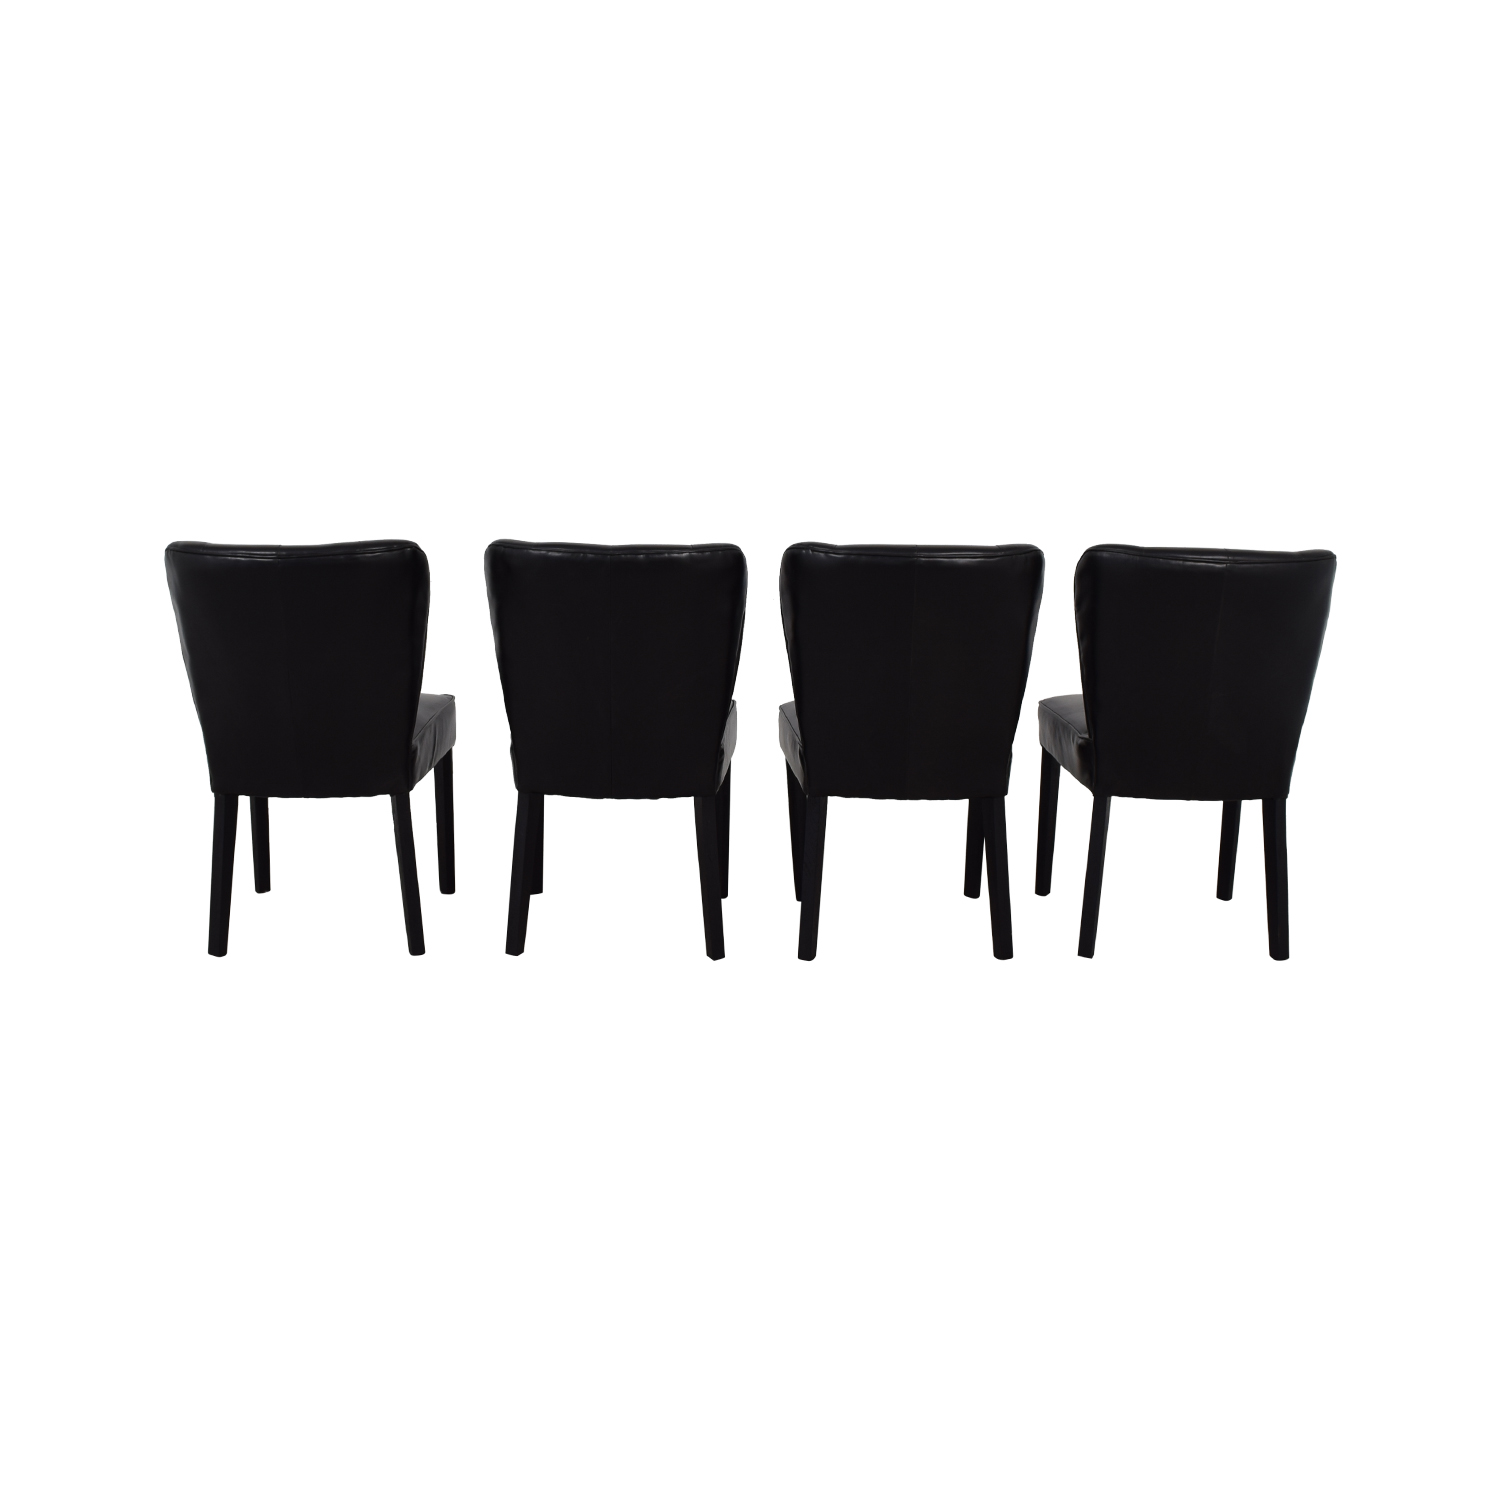 Arhaus Arhaus Black Leather and Dark Espresso Wood Chairs coupon